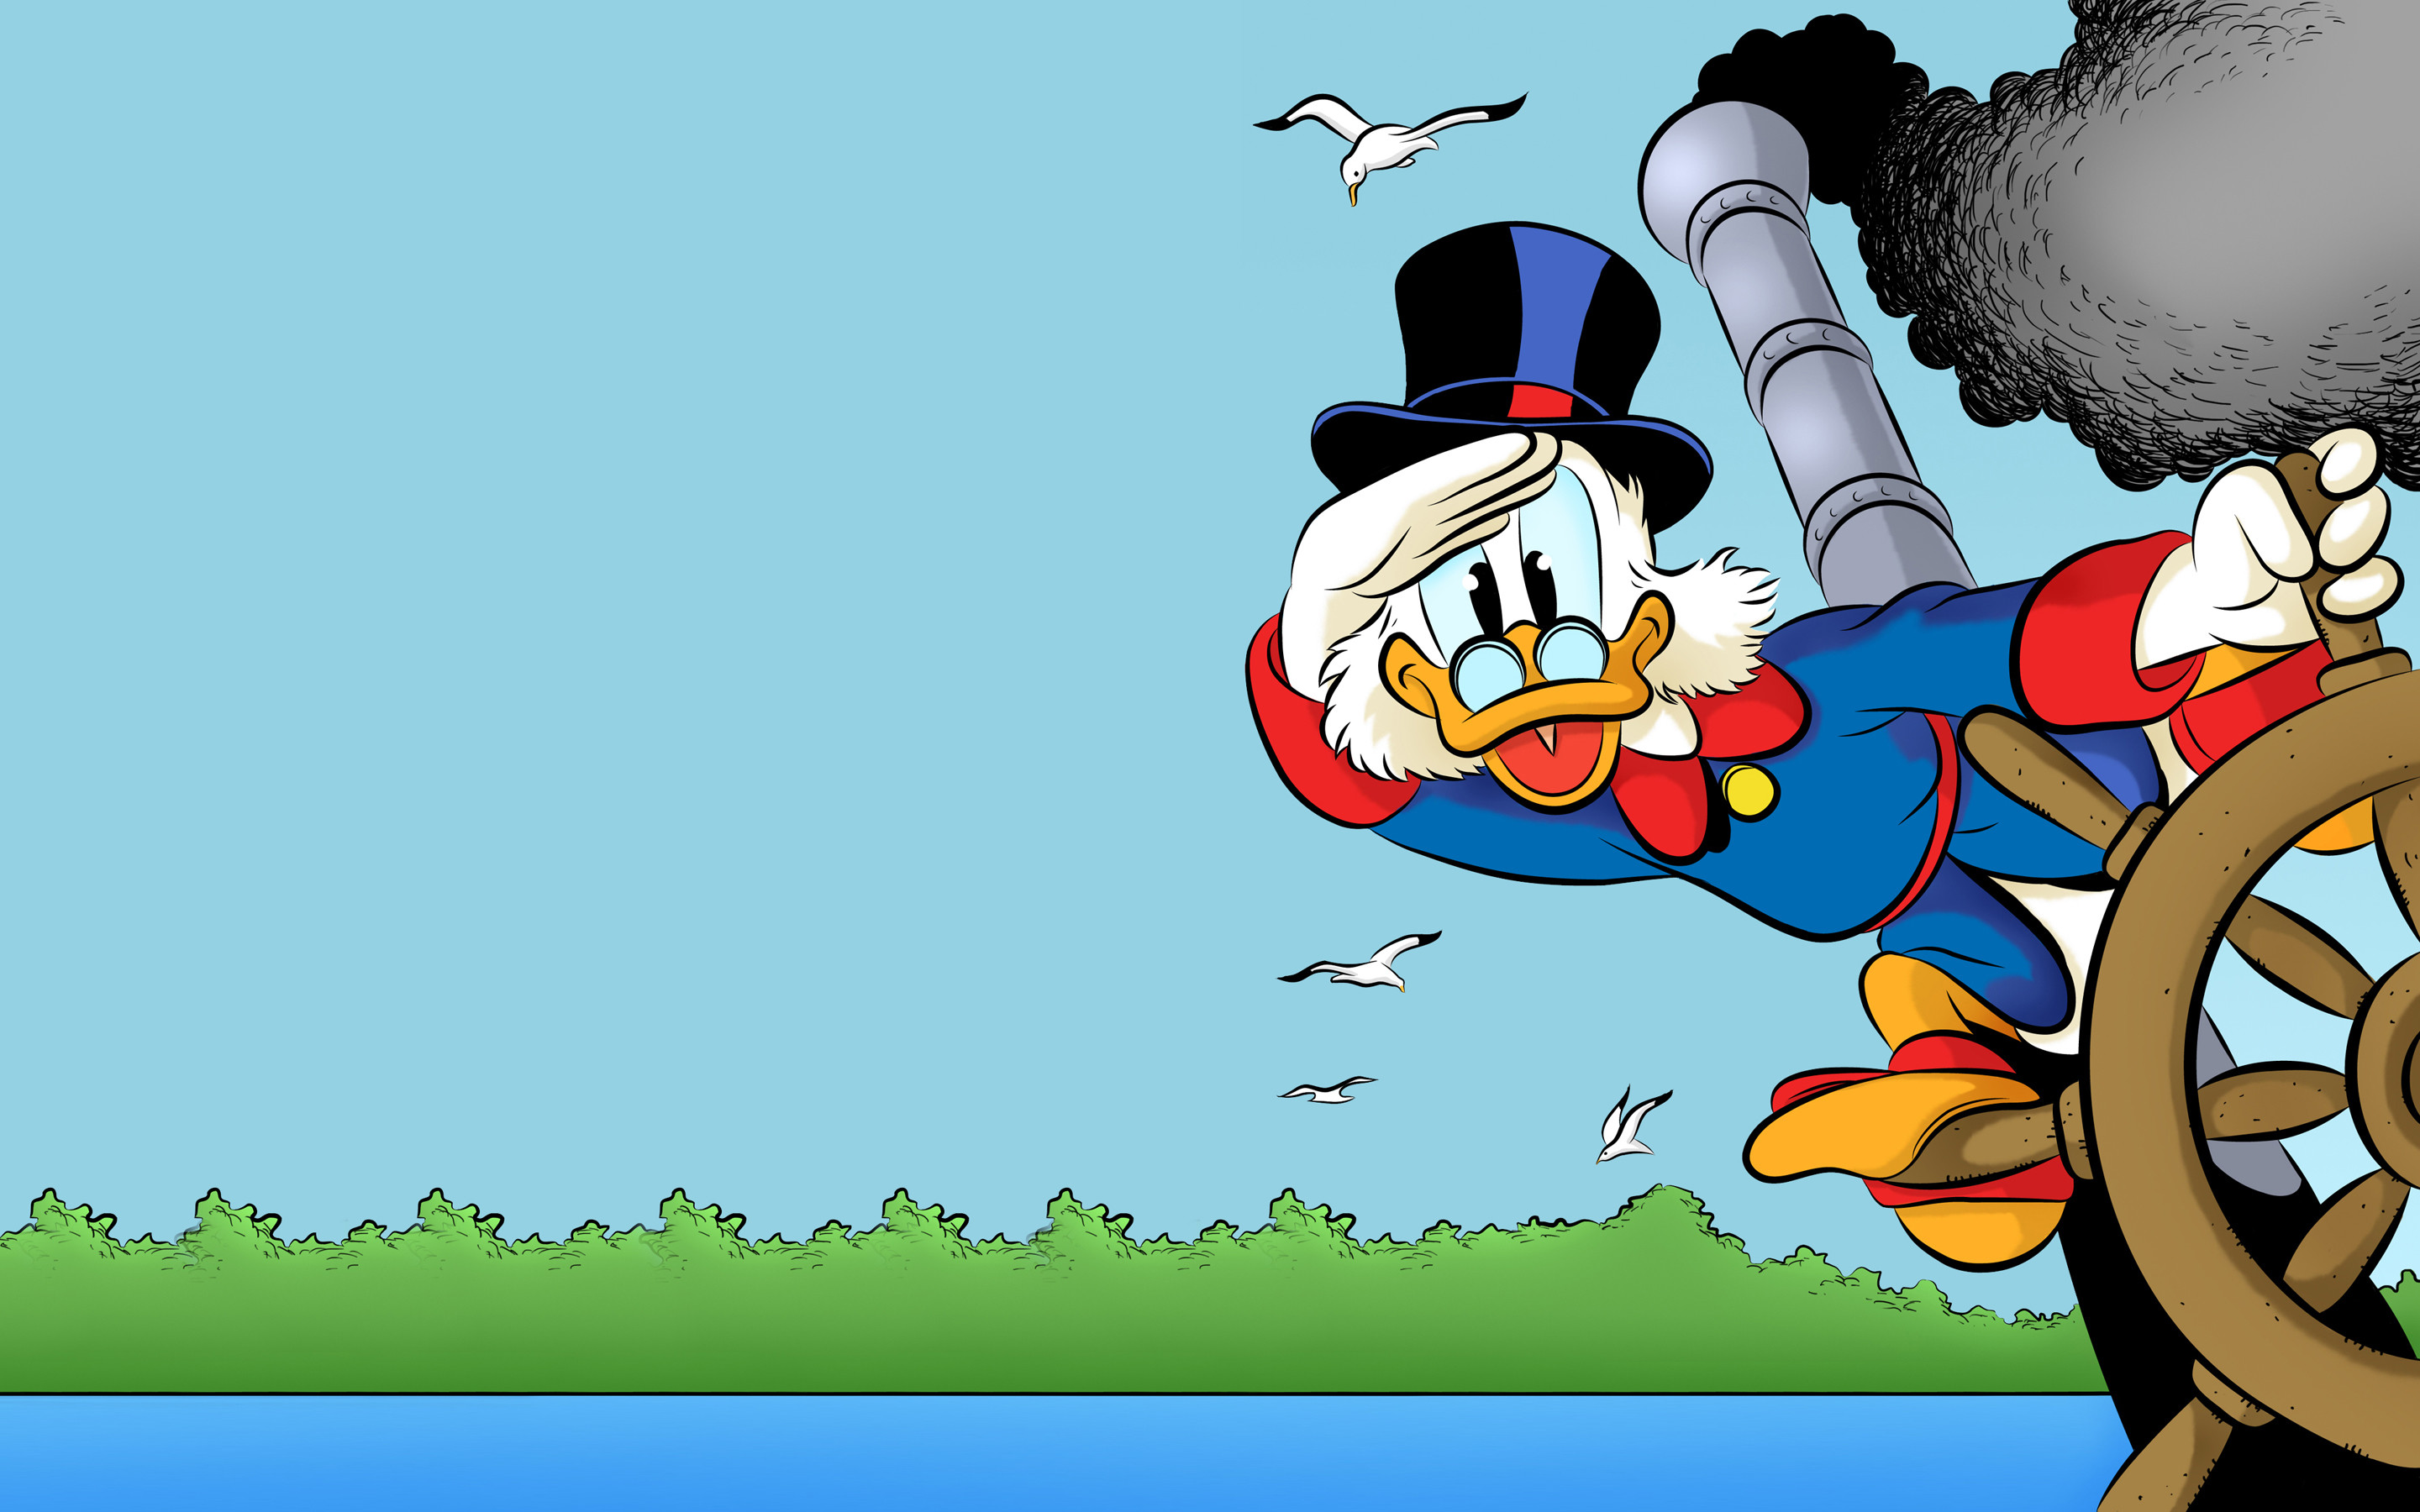 Res: 2880x1800, Comics - The Life and Times of Scrooge McDuck scrooge McDuck Ducktales  Wallpaper